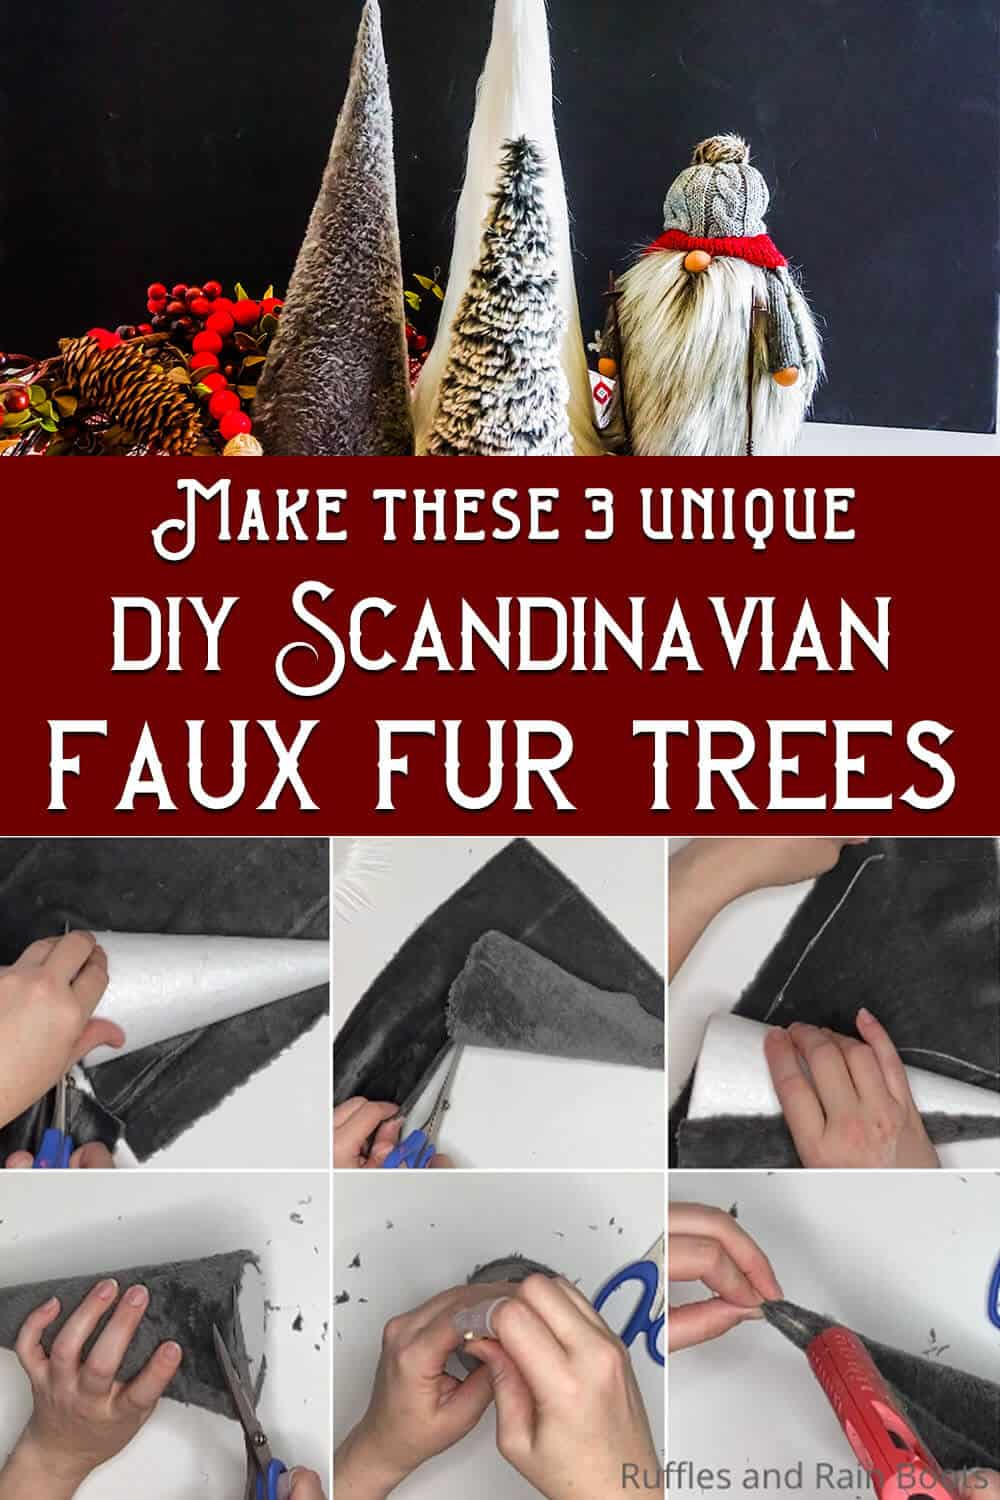 photo collage of scandinavian christmas trees diy with text which reads make these 3 unique diy scandinavian faux fur trees